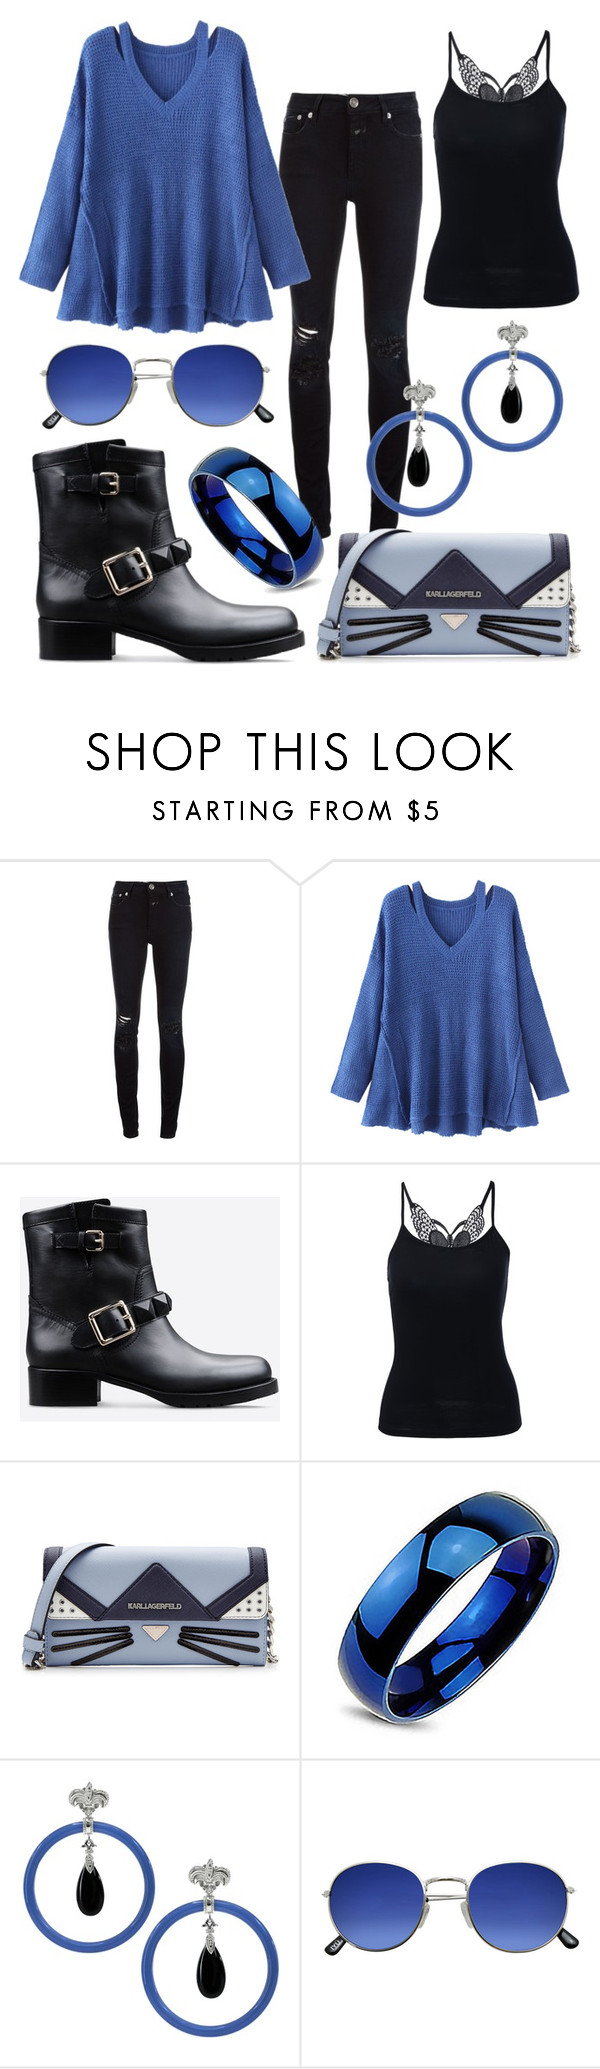 """""""503"""" by robertaelisa ❤ liked on Polyvore featuring Closed, WithChic, Valentino, Karl Lagerfeld and Dallas Prince"""